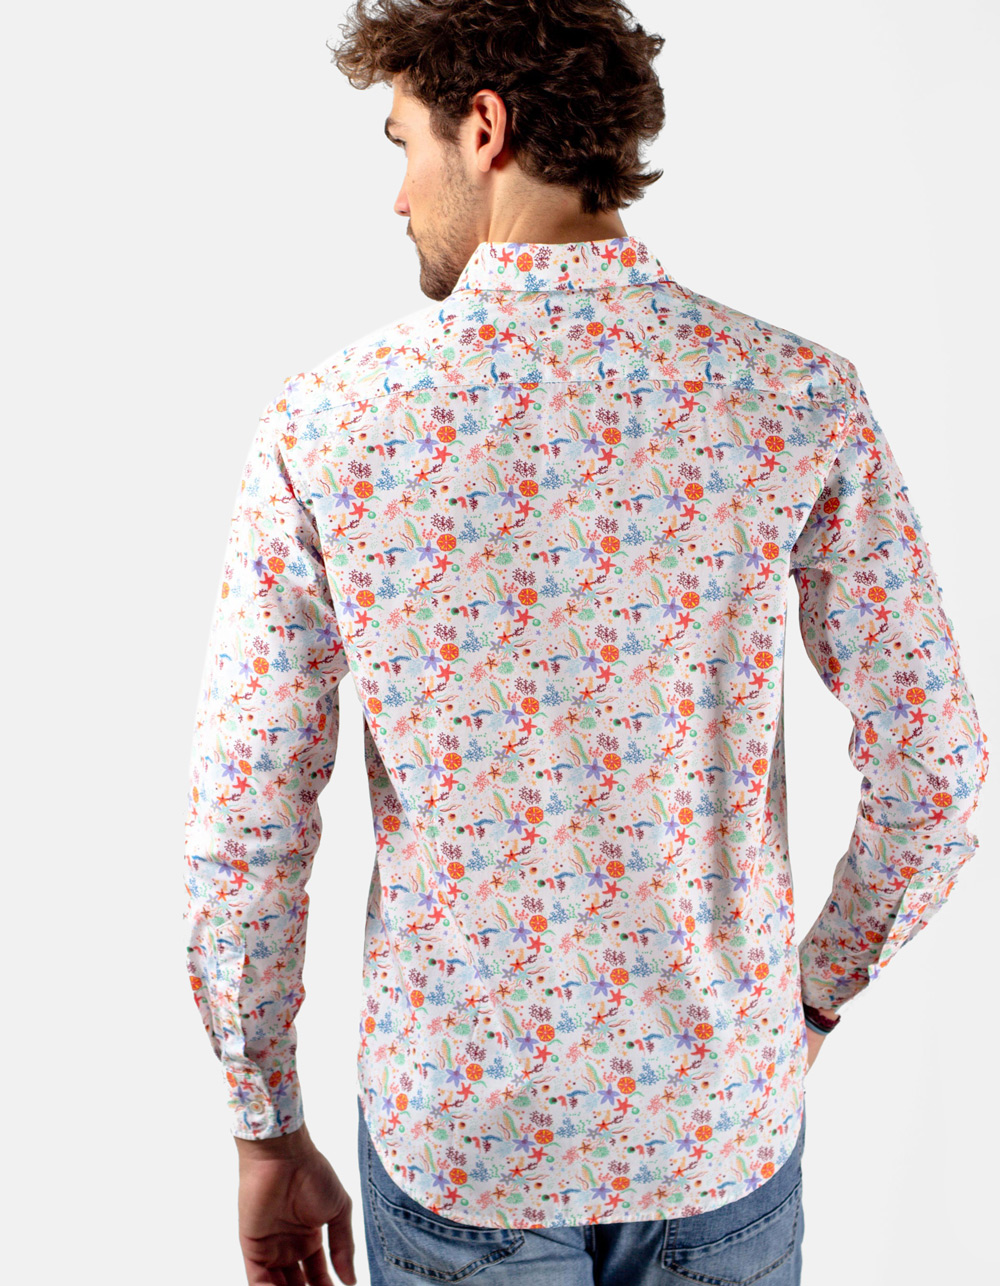 Camisa blanca estampada colores varios - Backside